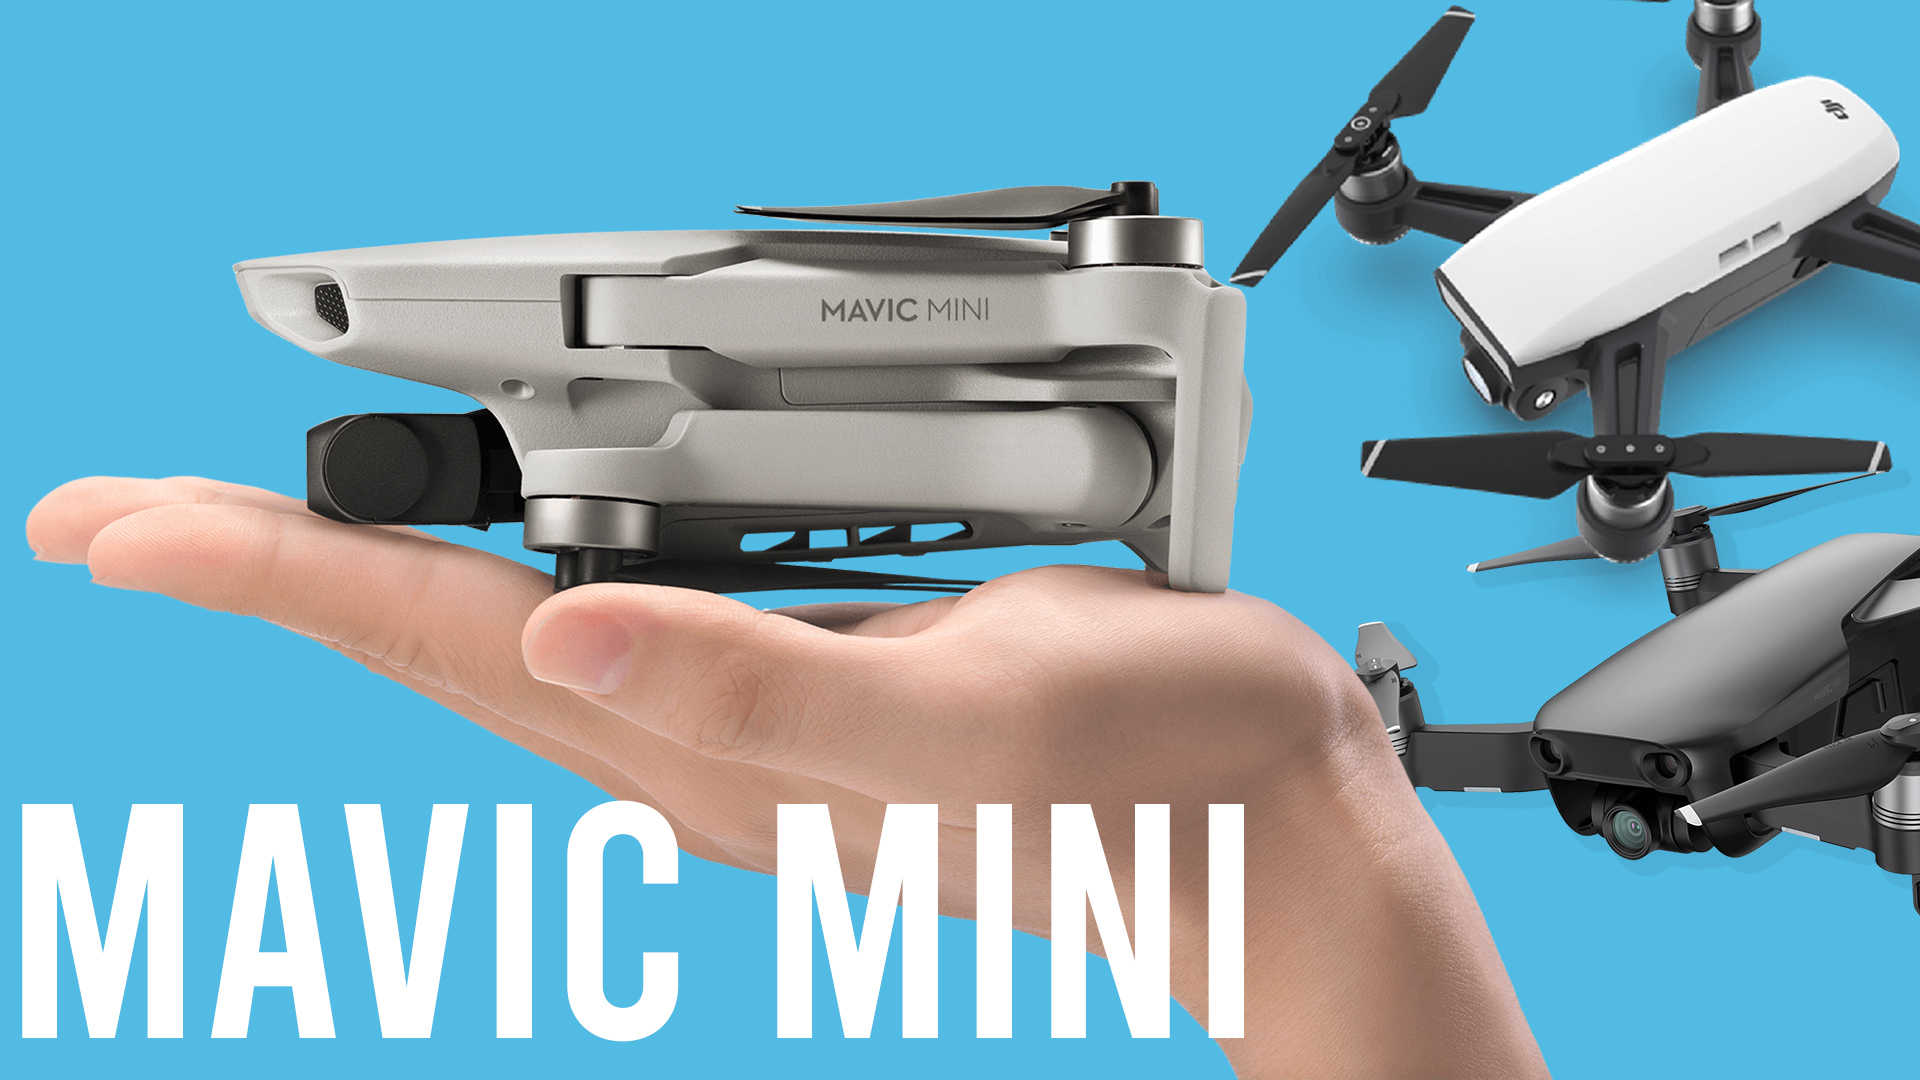 DJI-Mavic-MIni-VS-Mavic-Air-VS-Spark-drone-Review.jpg